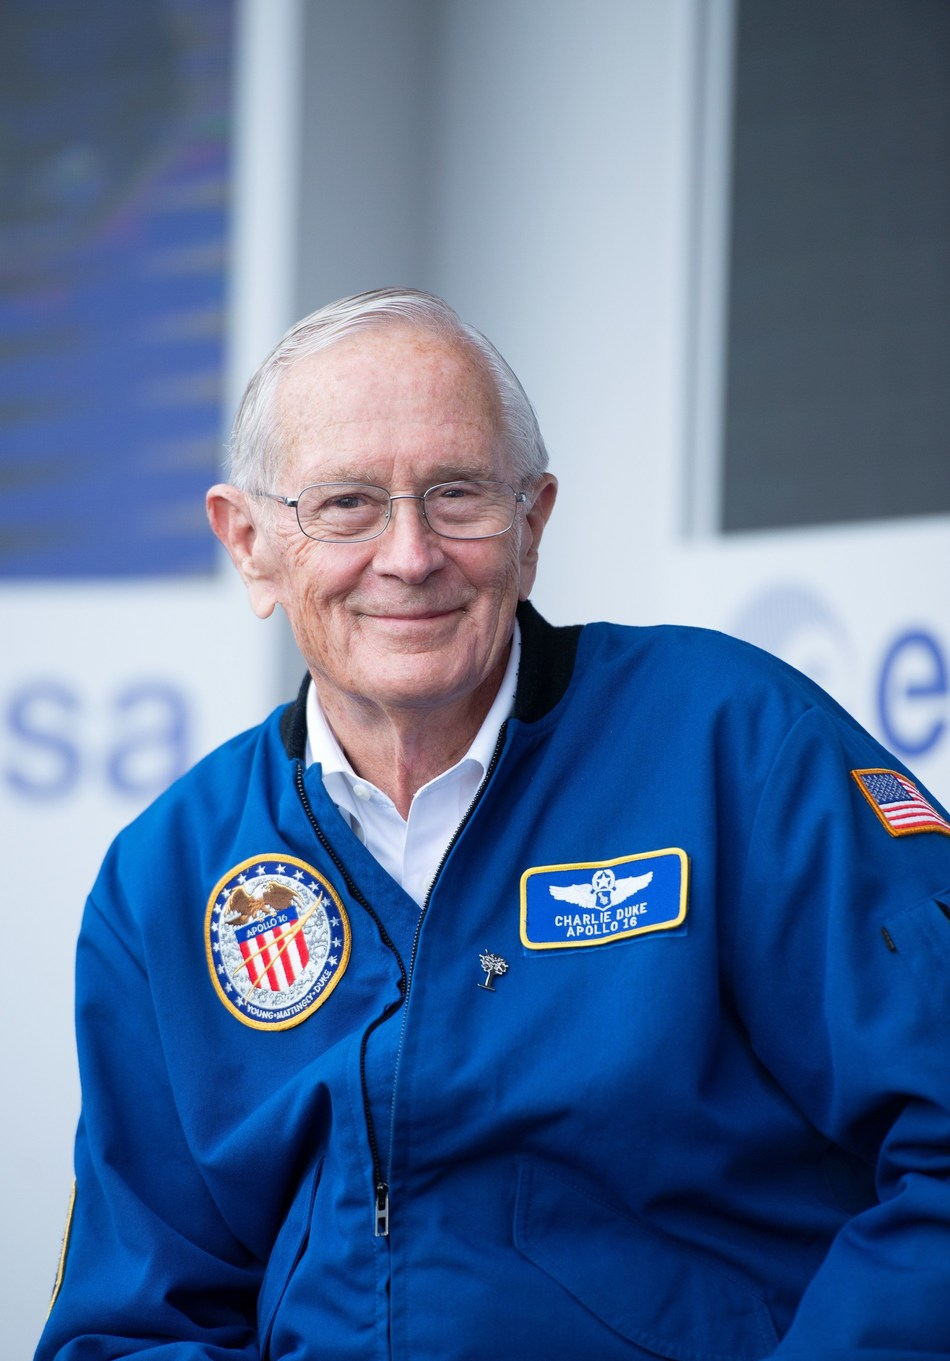 June 18, 2019 - NASA Apollo astronaut Charlie Duke on the European Space Agency stand at the 53rd International Le Bourget Air & Space Show in Paris, France.